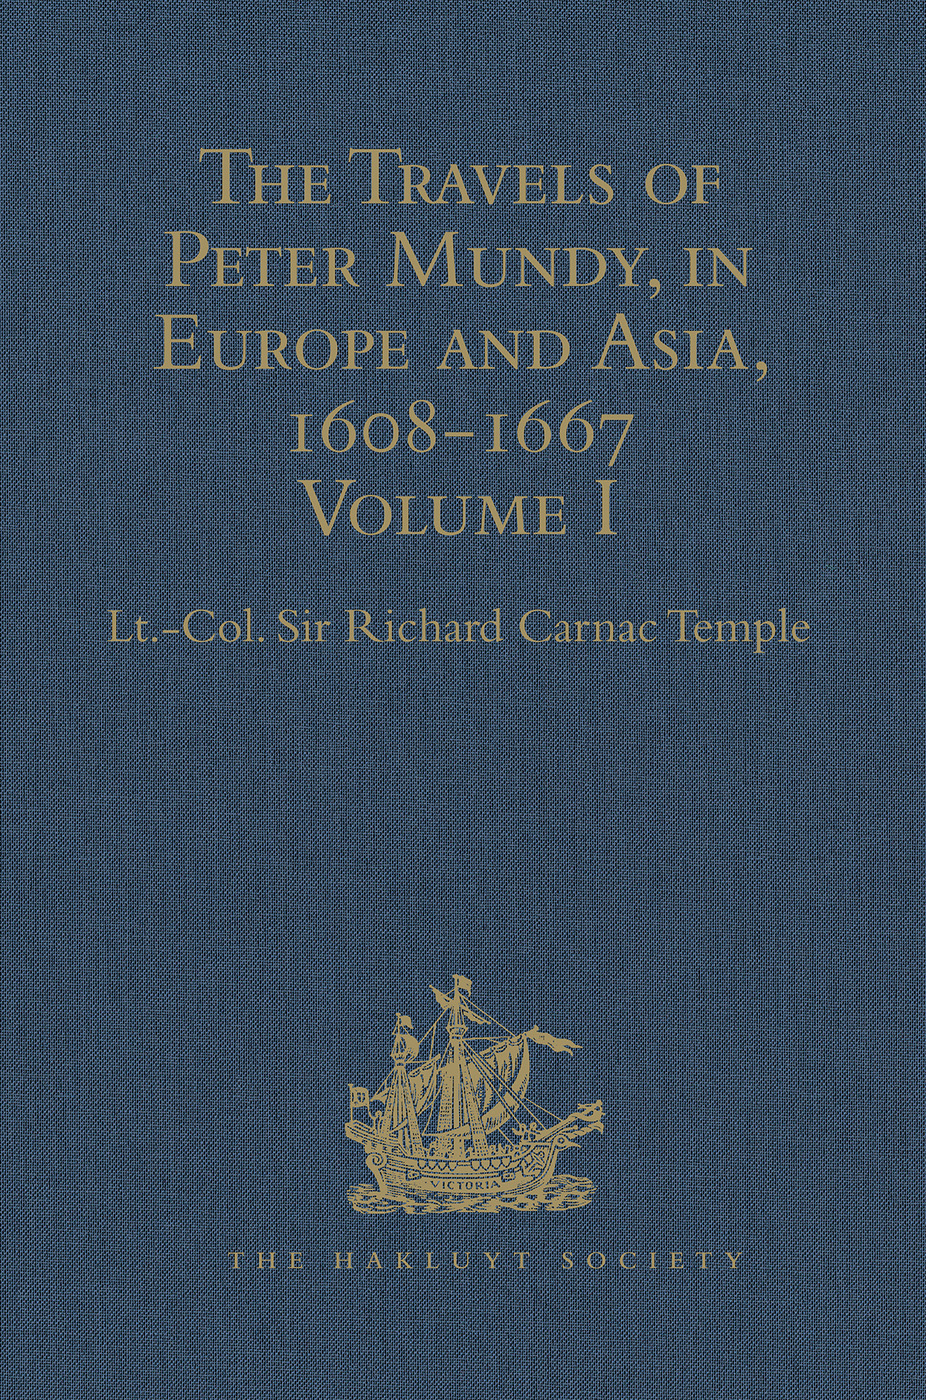 The Travels of Peter Mundy, in Europe and Asia, 1608-1667: Volume I: Travels in Europe, 1608-1628, 1st Edition (Hardback) book cover